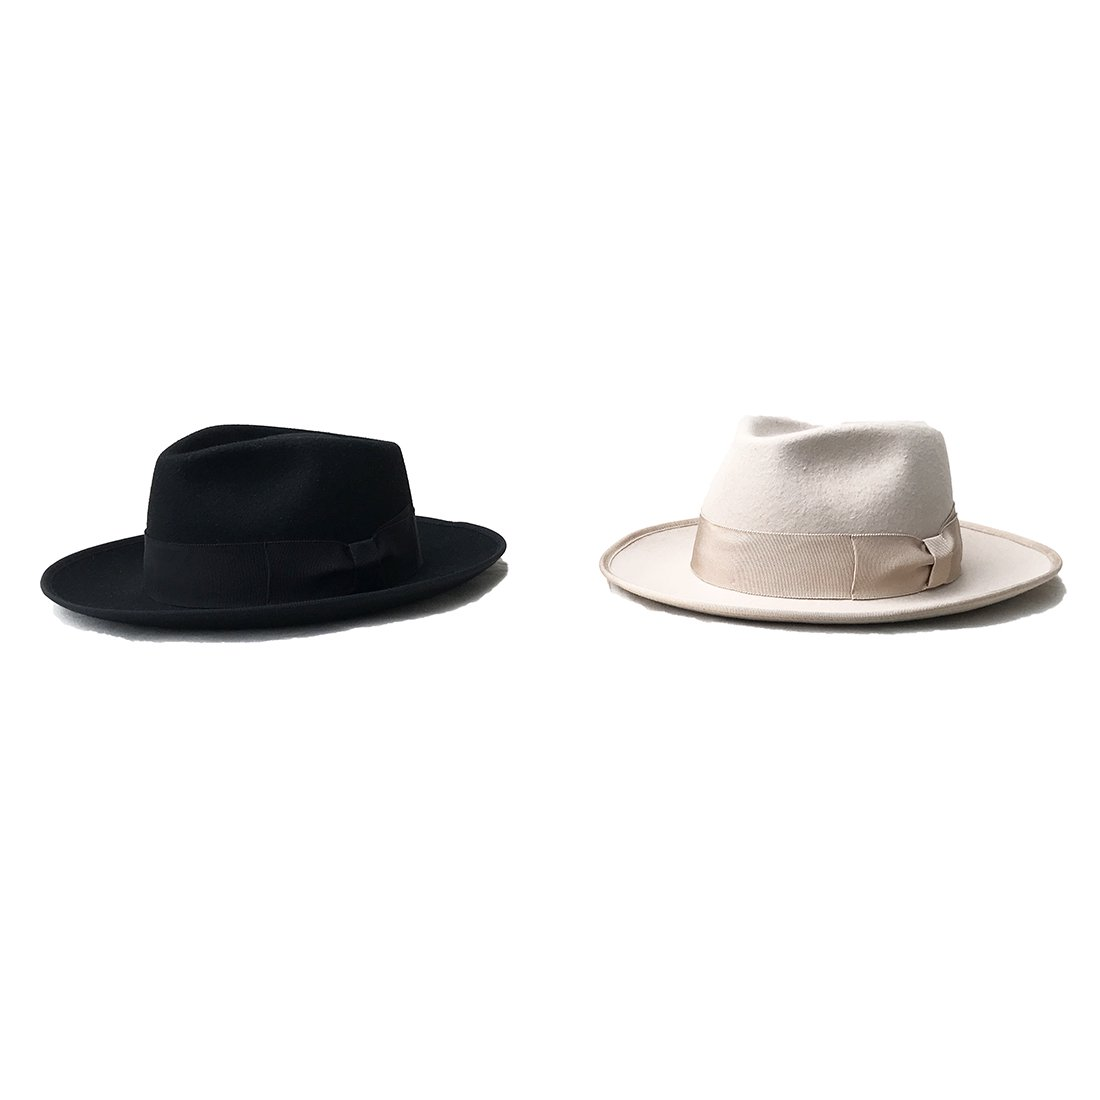 CAPTAINS HELM #CAPTAIN'S FEDORA